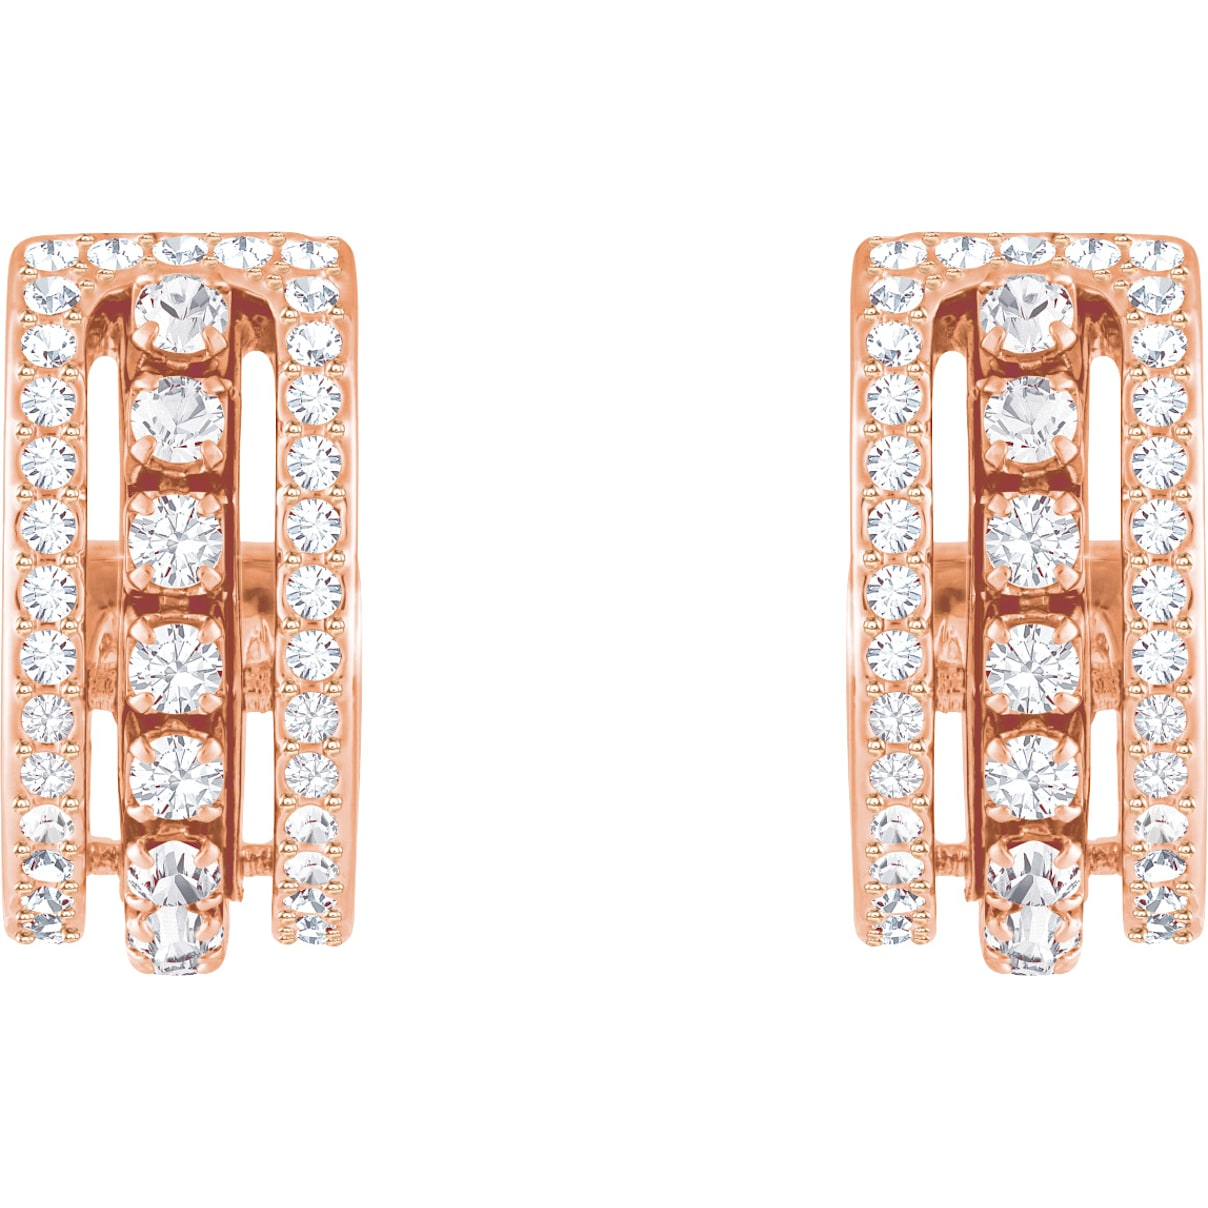 Swarovski Further Pierced Earrings, White, Rose-gold tone plated